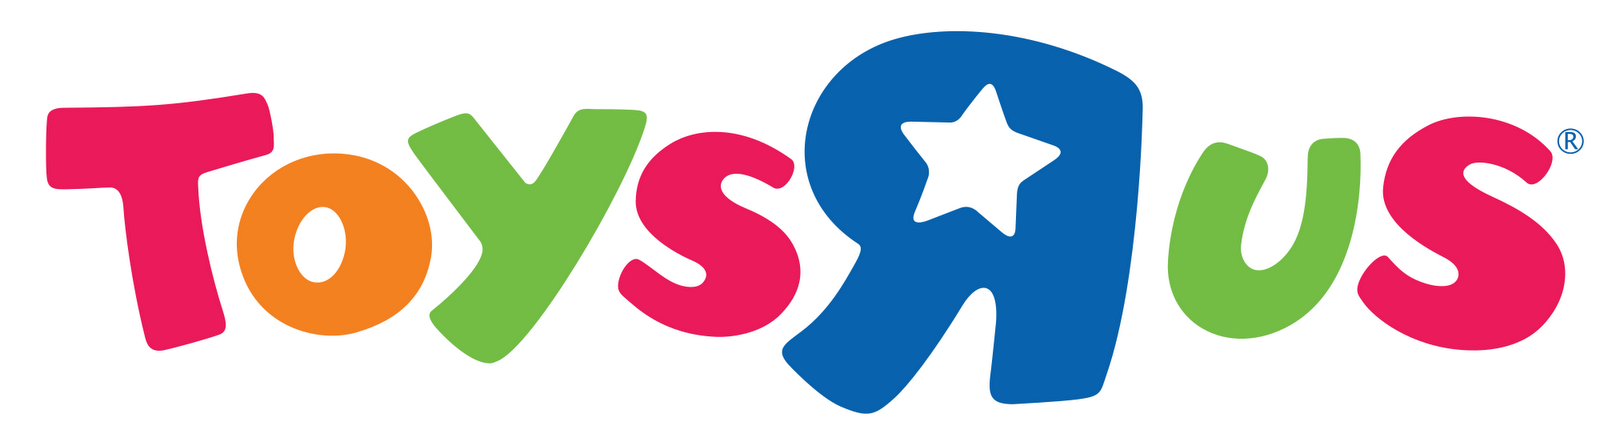 Image Toys R Us Logo Png Logopedia Fandom Powered By Wikia